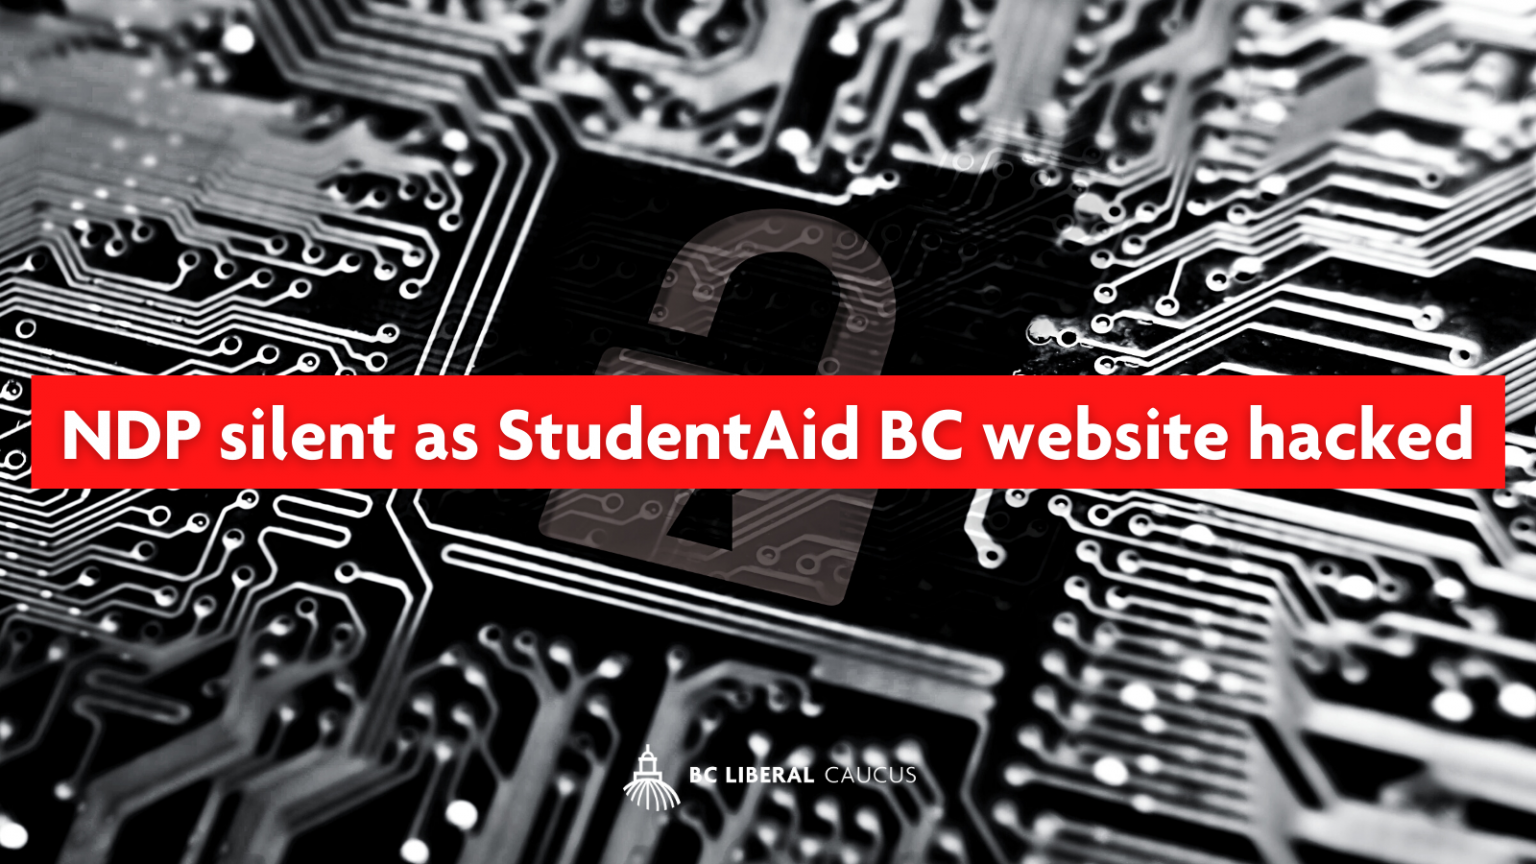 NDP silent as StudentAid BC website hacked